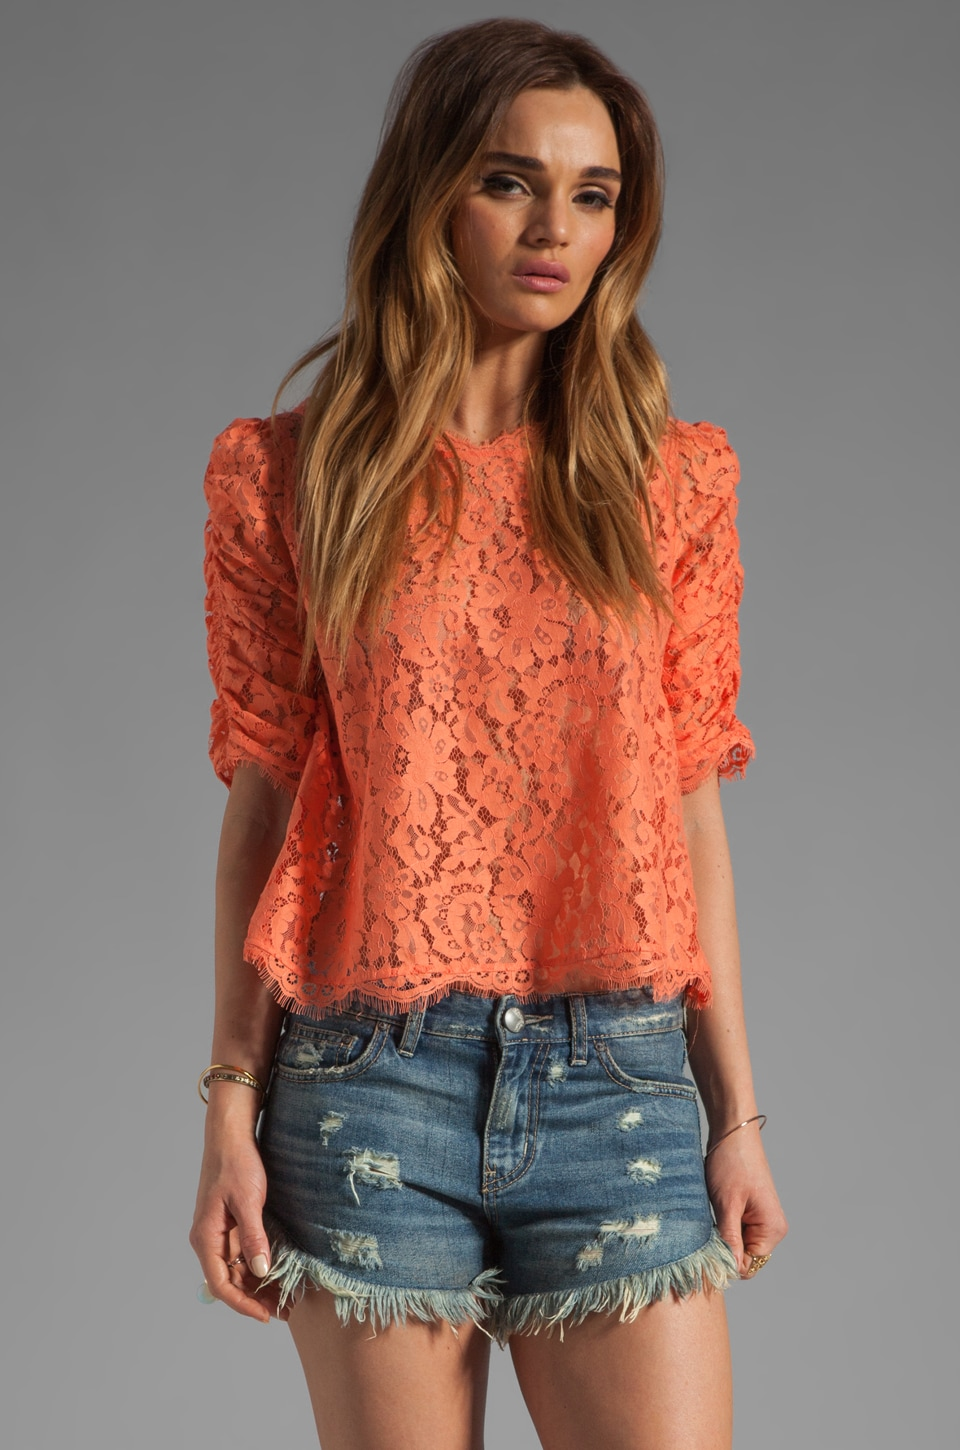 Joie Fanny Lace Top in Hot Coral